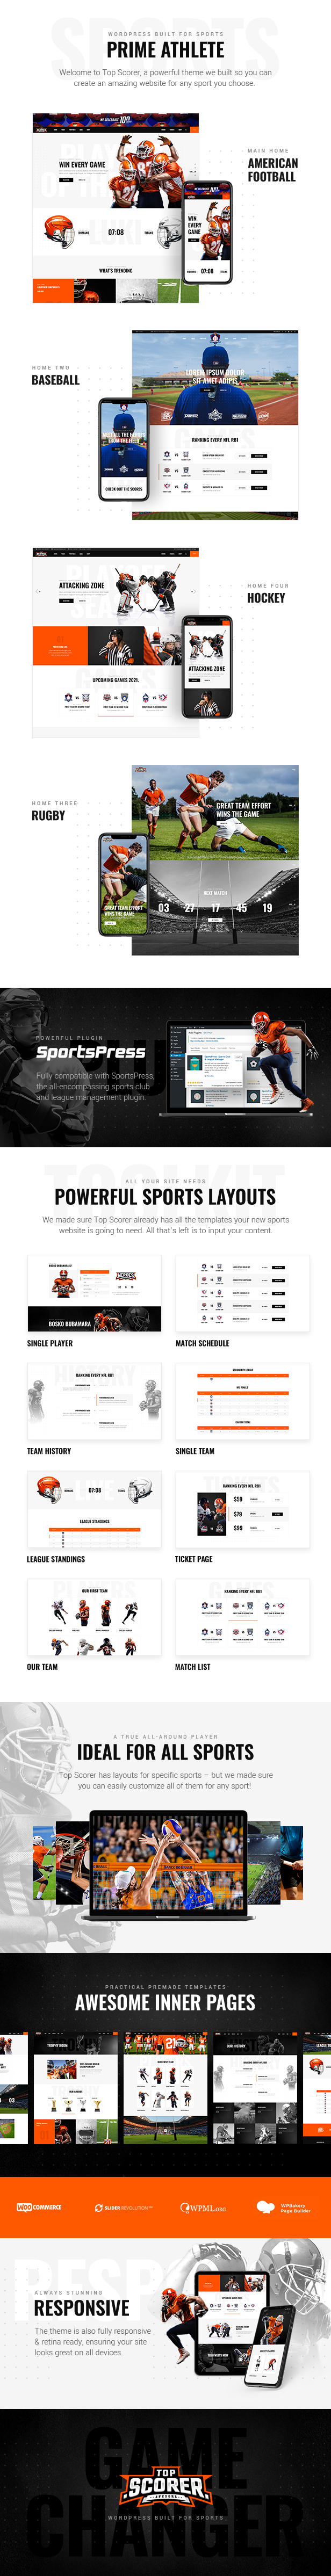 TopScorer - Sports WordPress Theme - 1